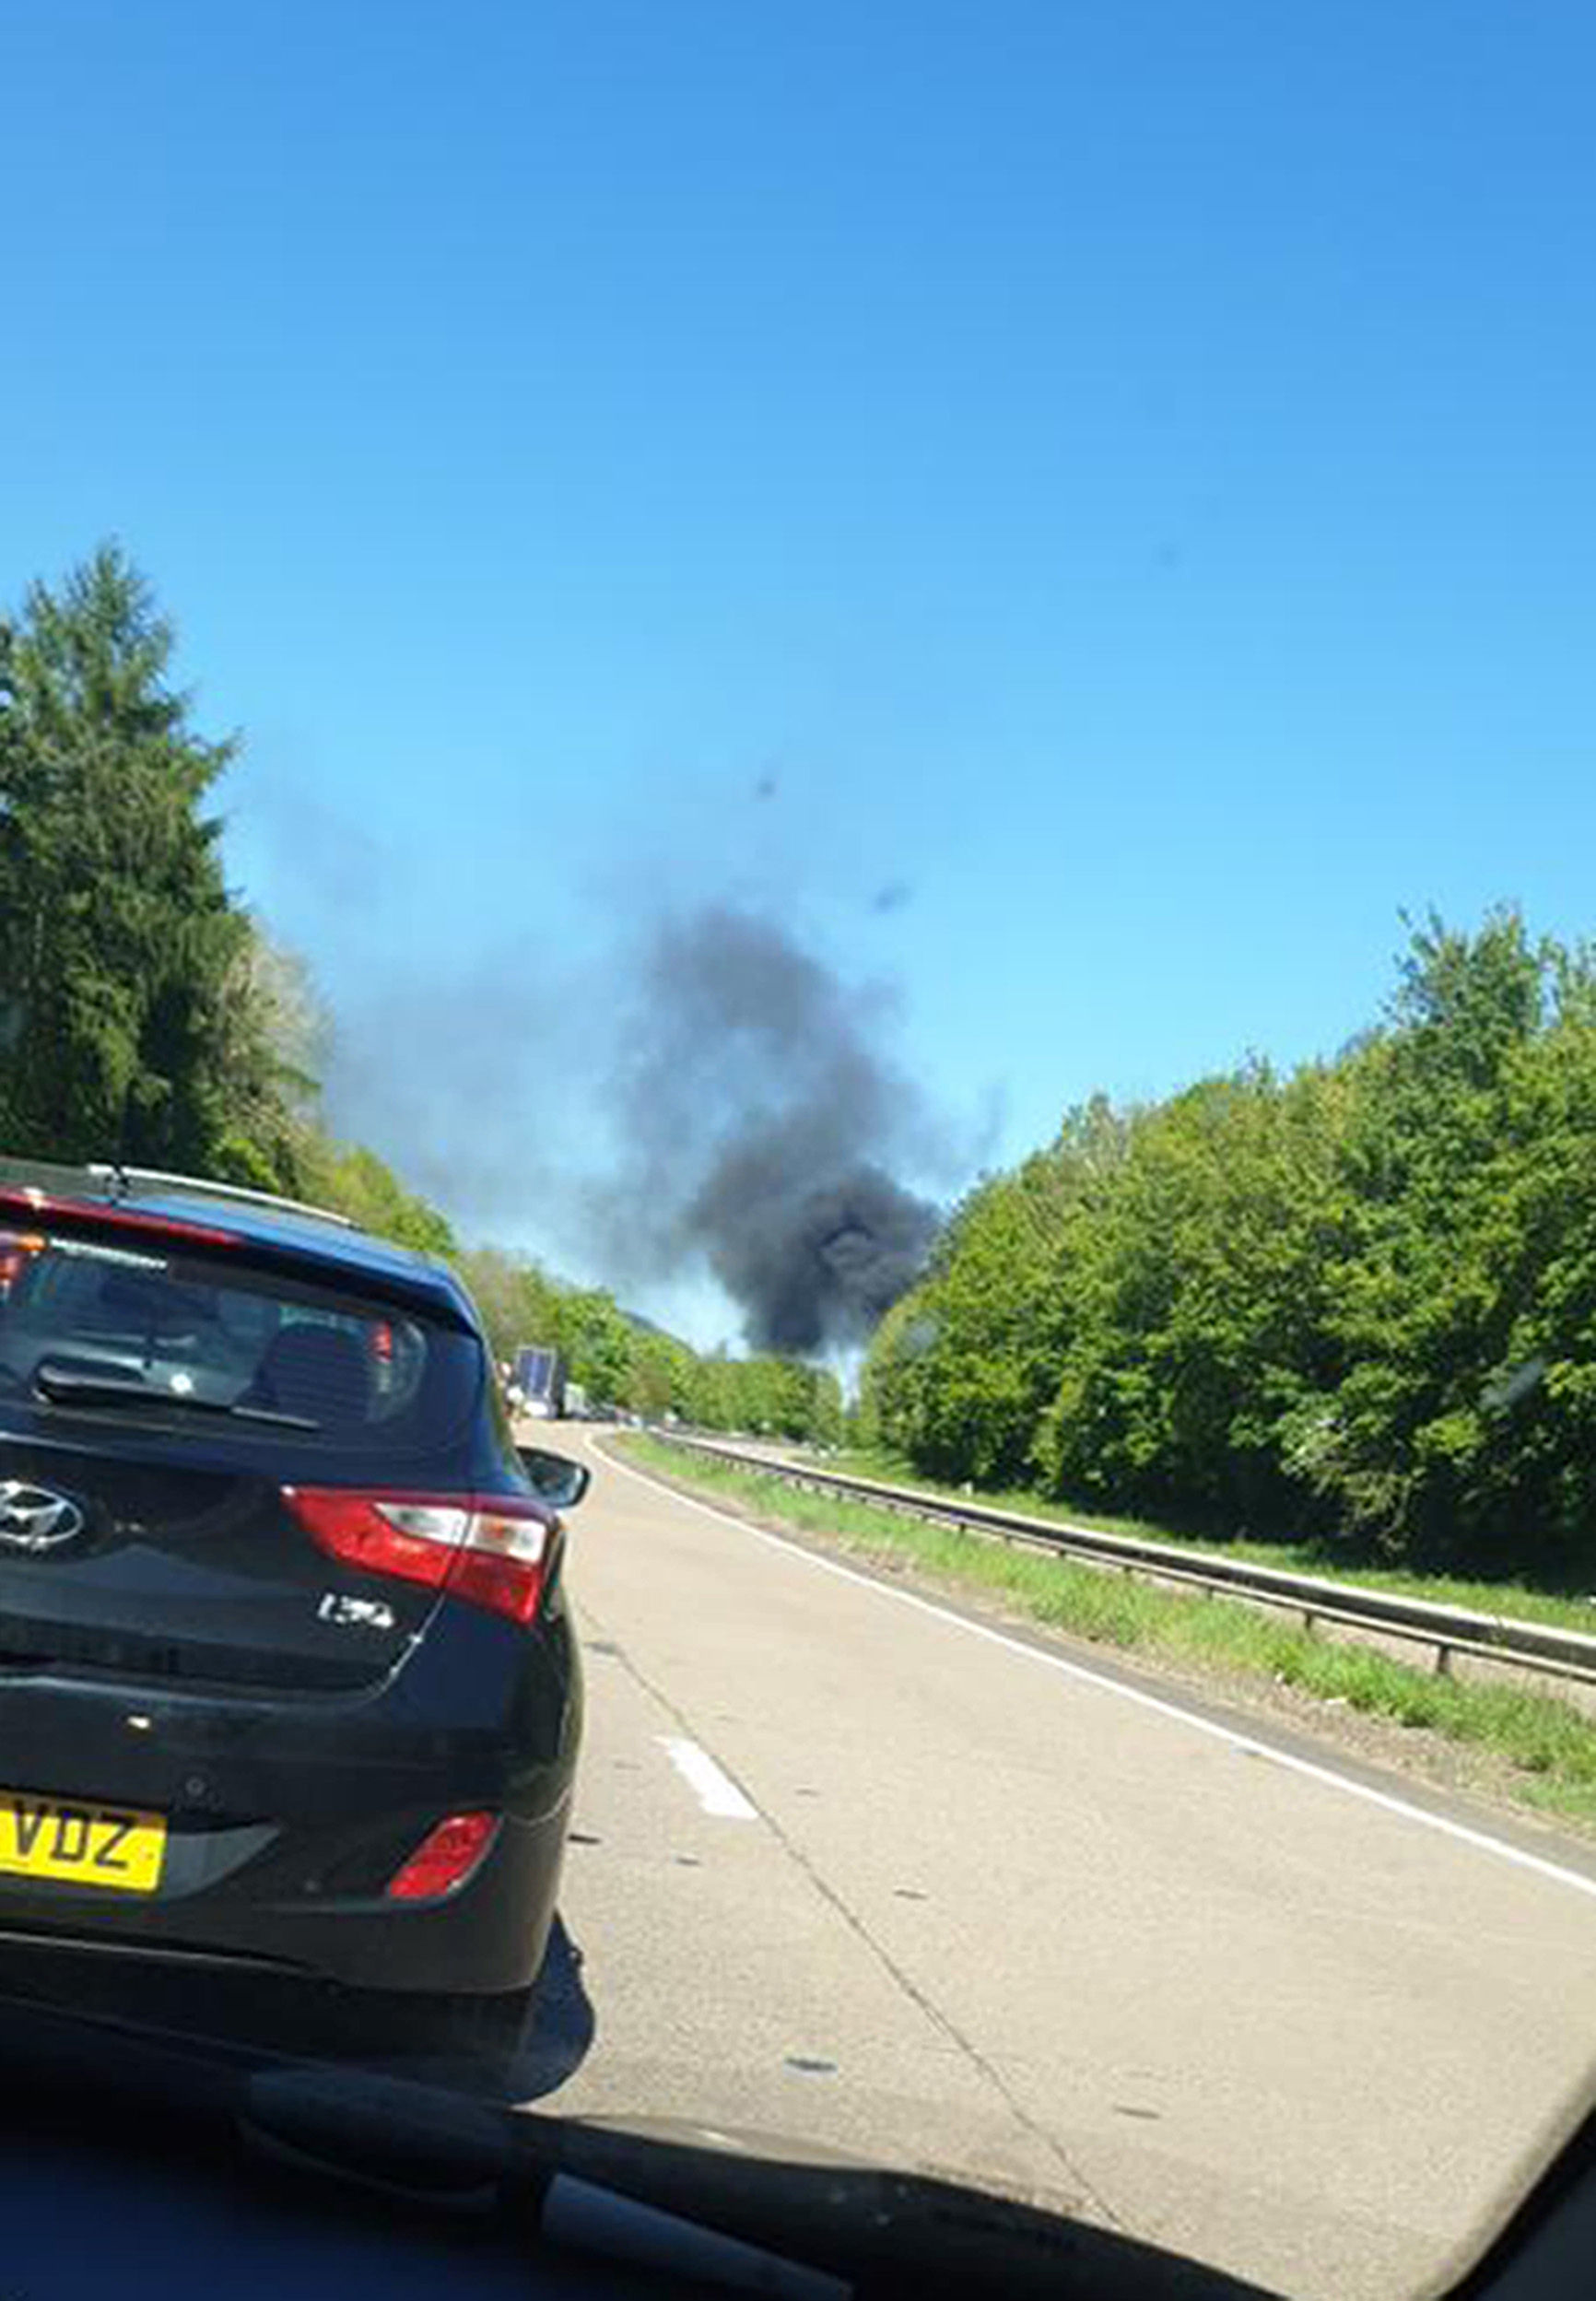 Picture taken with permission from the twitter feed of @Mingles_Bee of smoke rising from the scene of a light aircraft crash on A40 between Raglan and Abergavenny.